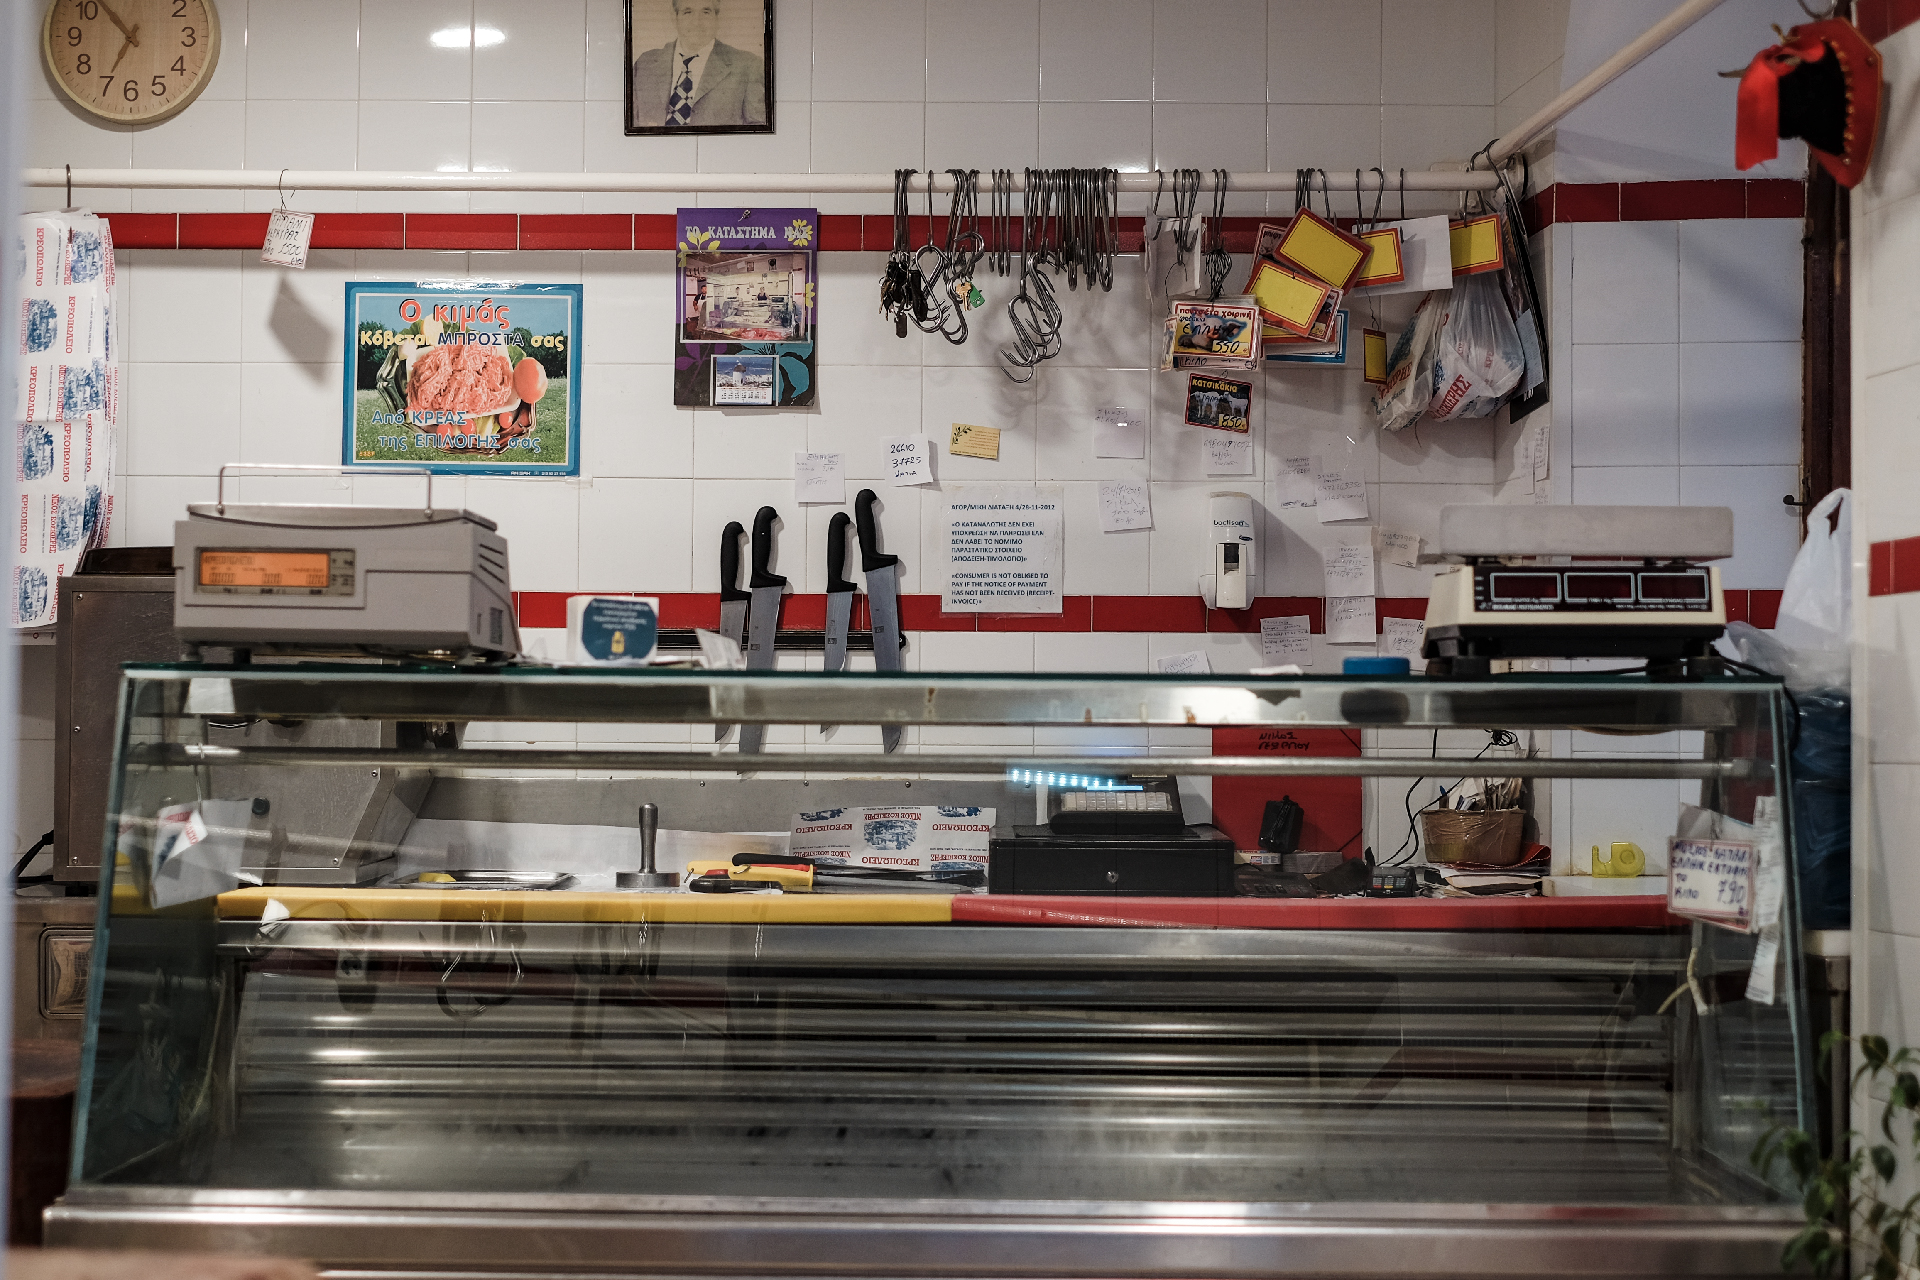 Inside of a butchery, weekend in Greece